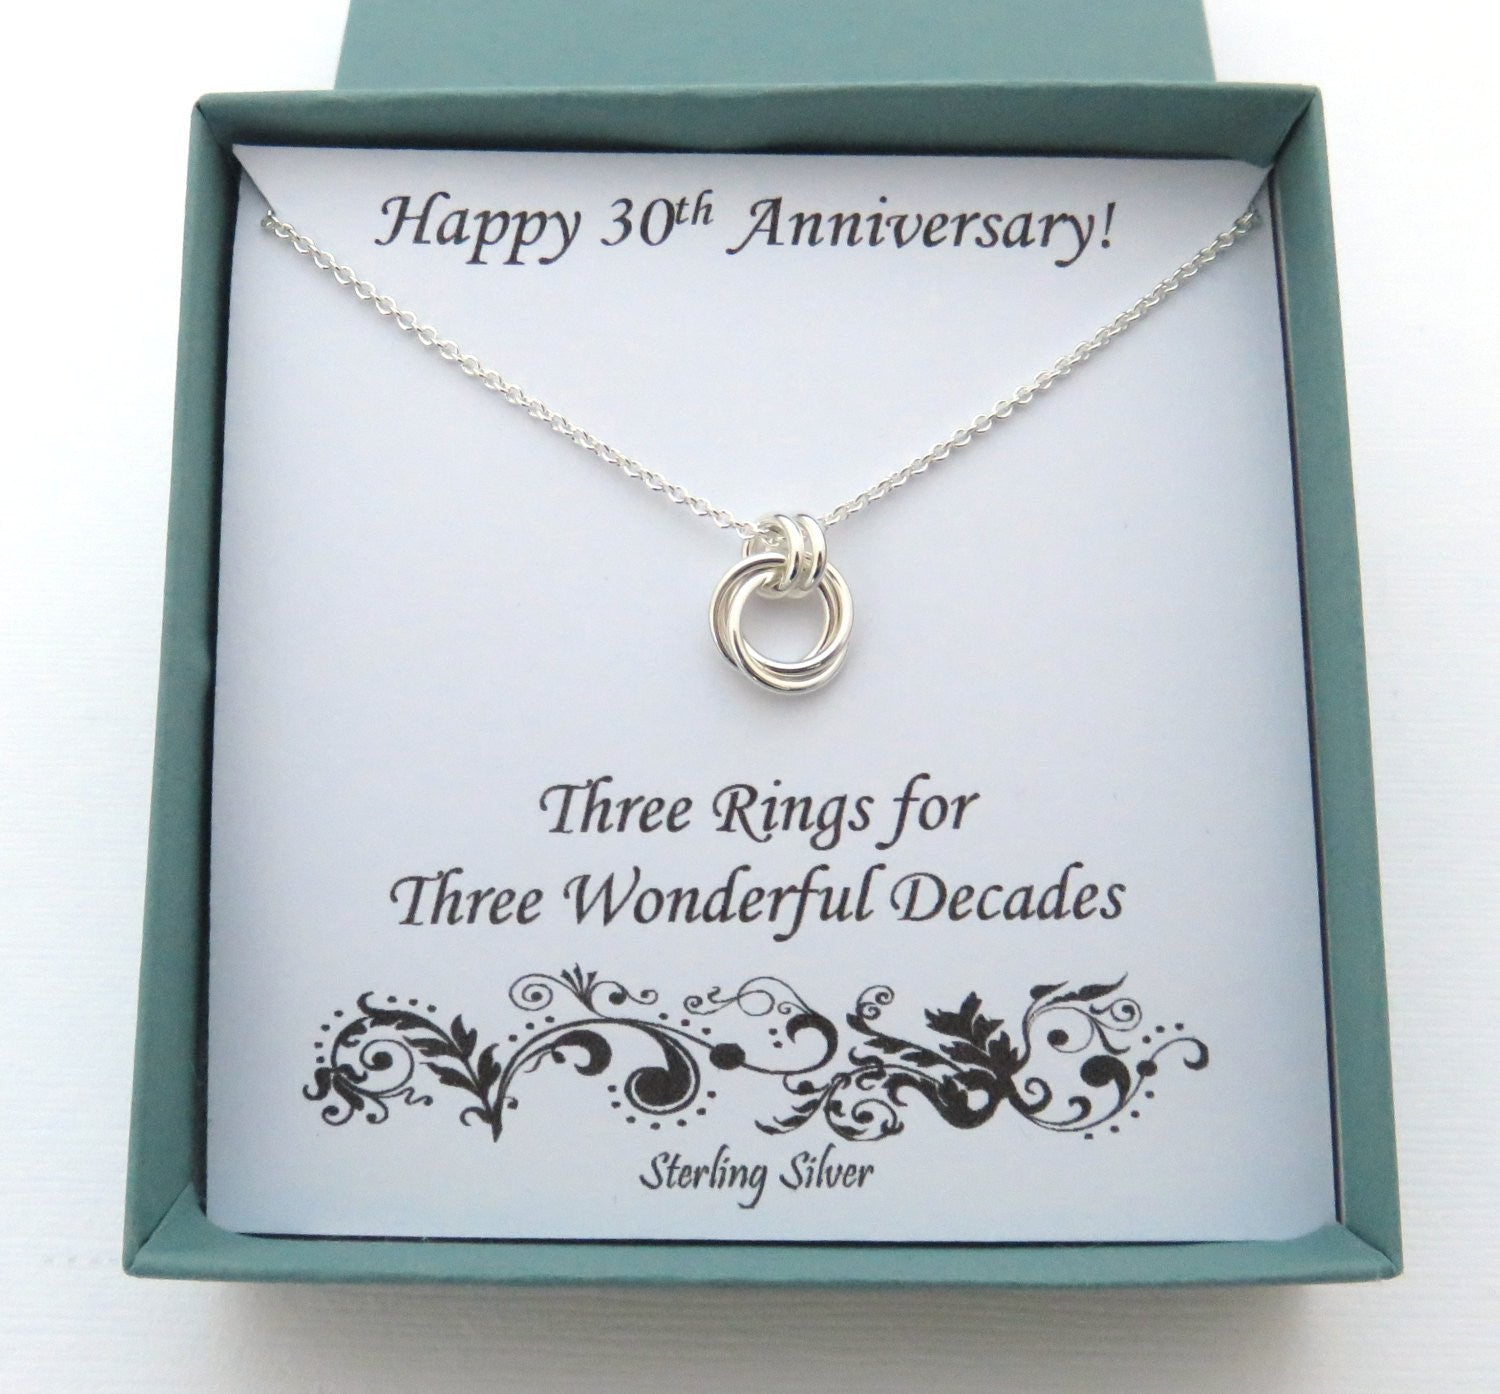 30th anniversary gift sterling silver necklace marciahdesigns